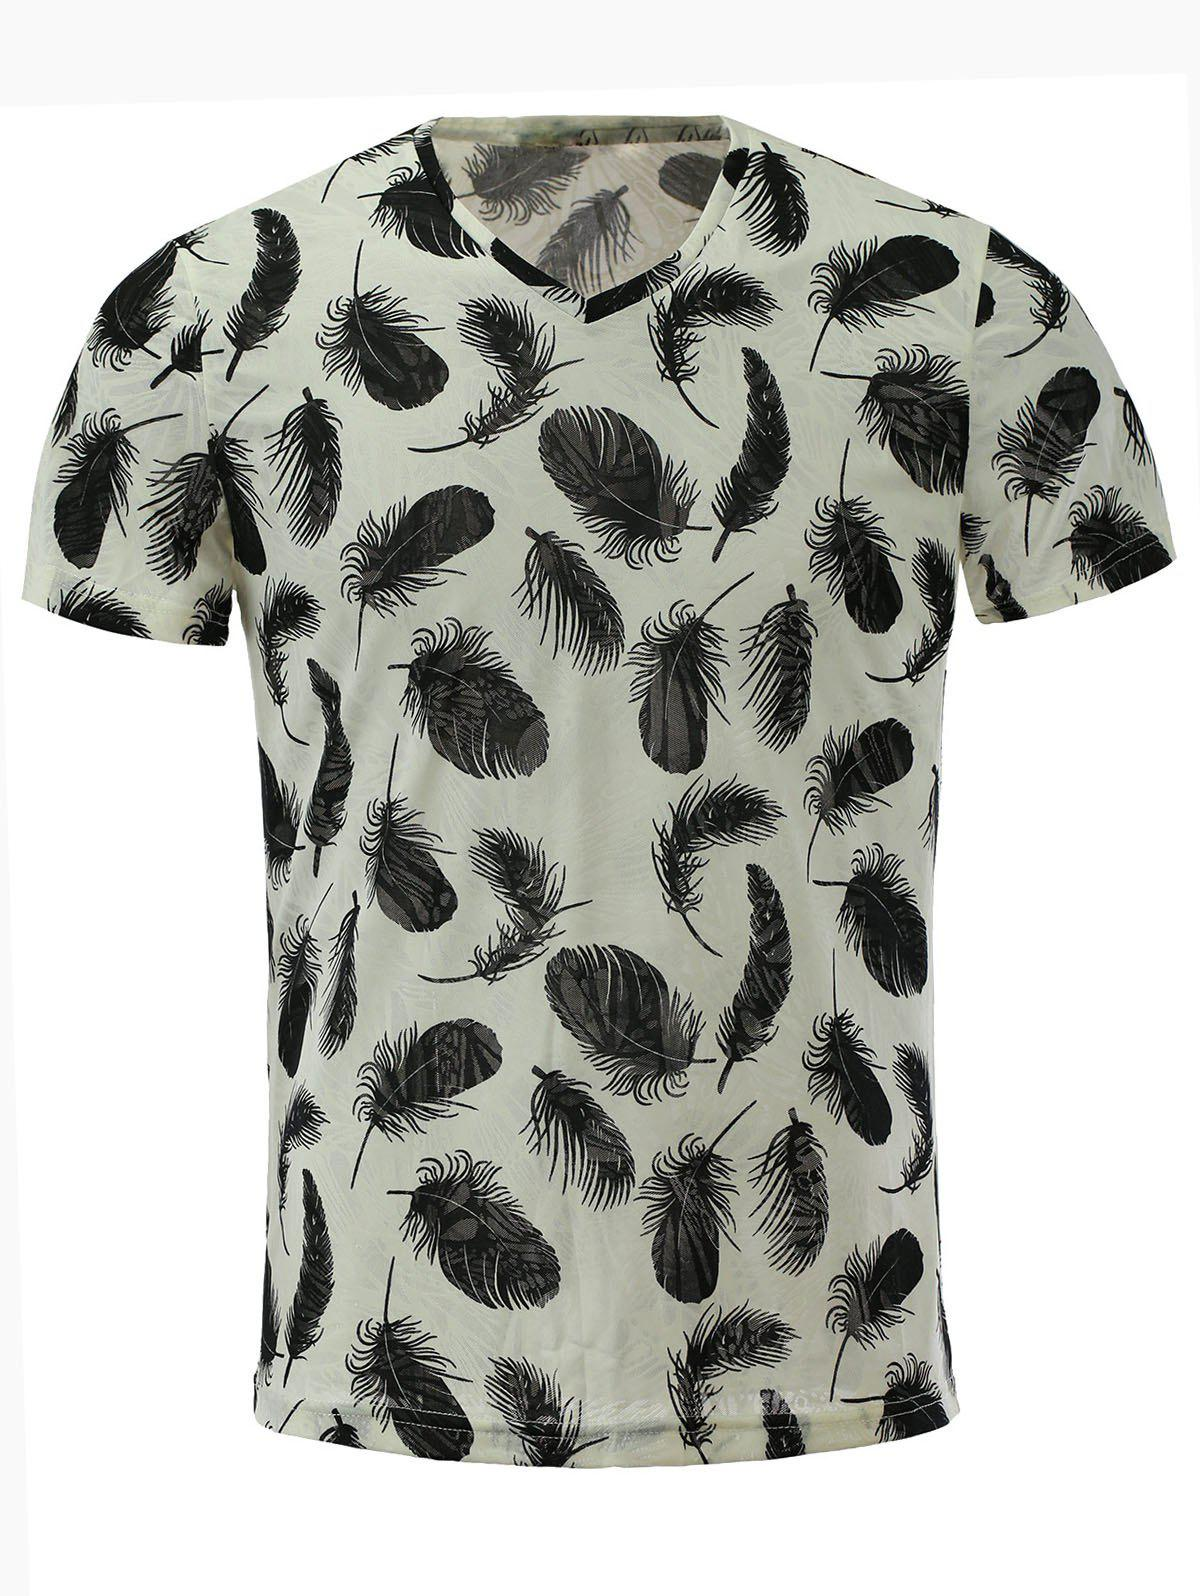 Men's Stylish Short Sleeves V-Neck Feather Printed T-Shirt - COLORMIX M